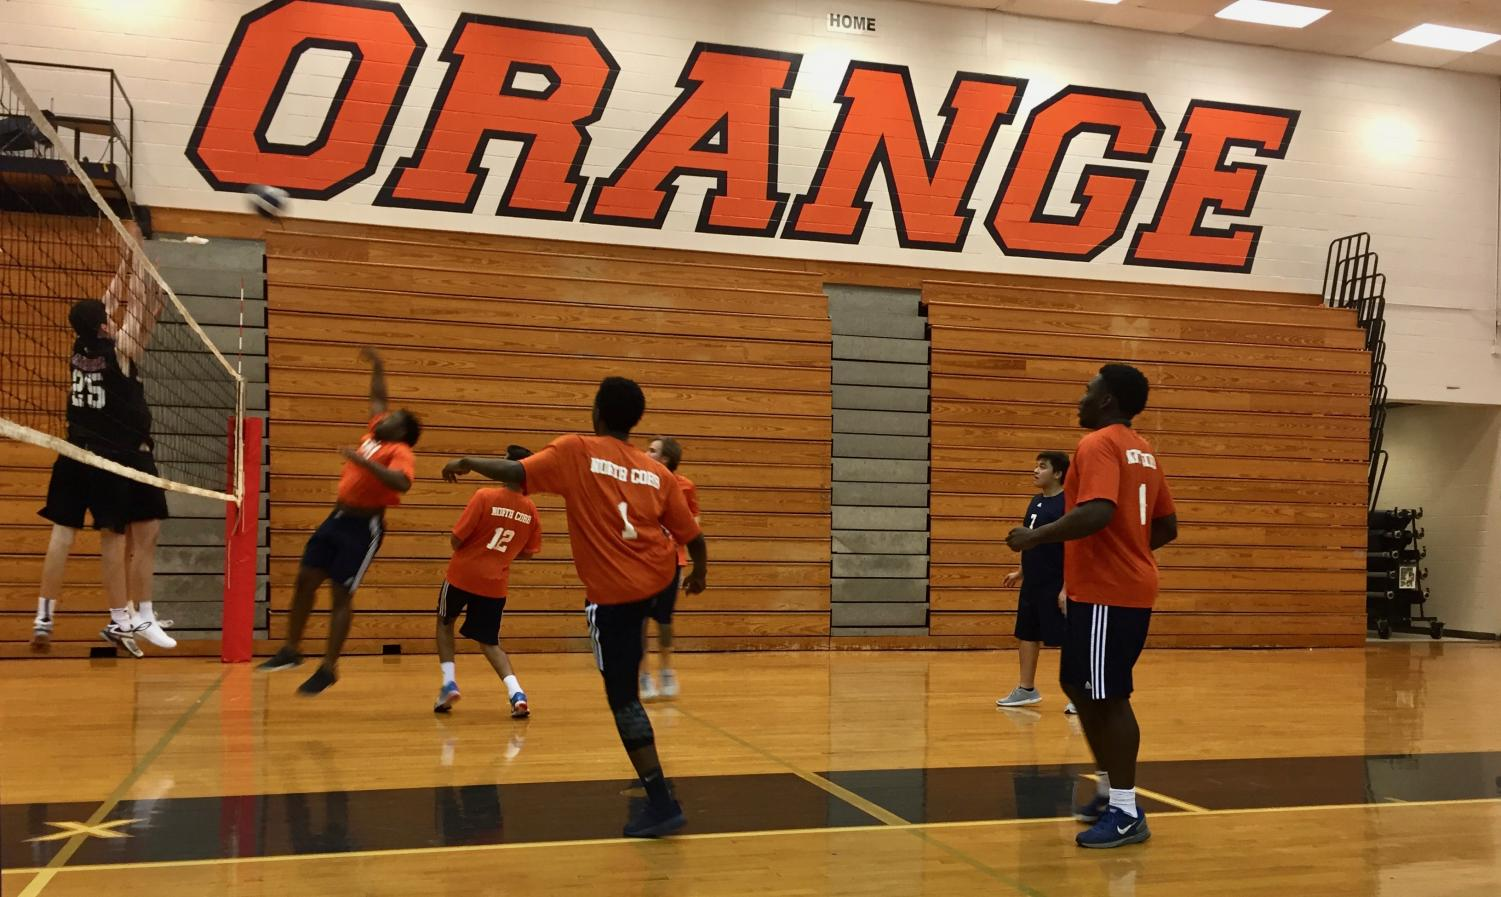 The men's volleyball team passes into their second season, feeling excited and ready to face what challenges may come. The team continues to practice and win games, preparing them for the state playoffs on May 6.